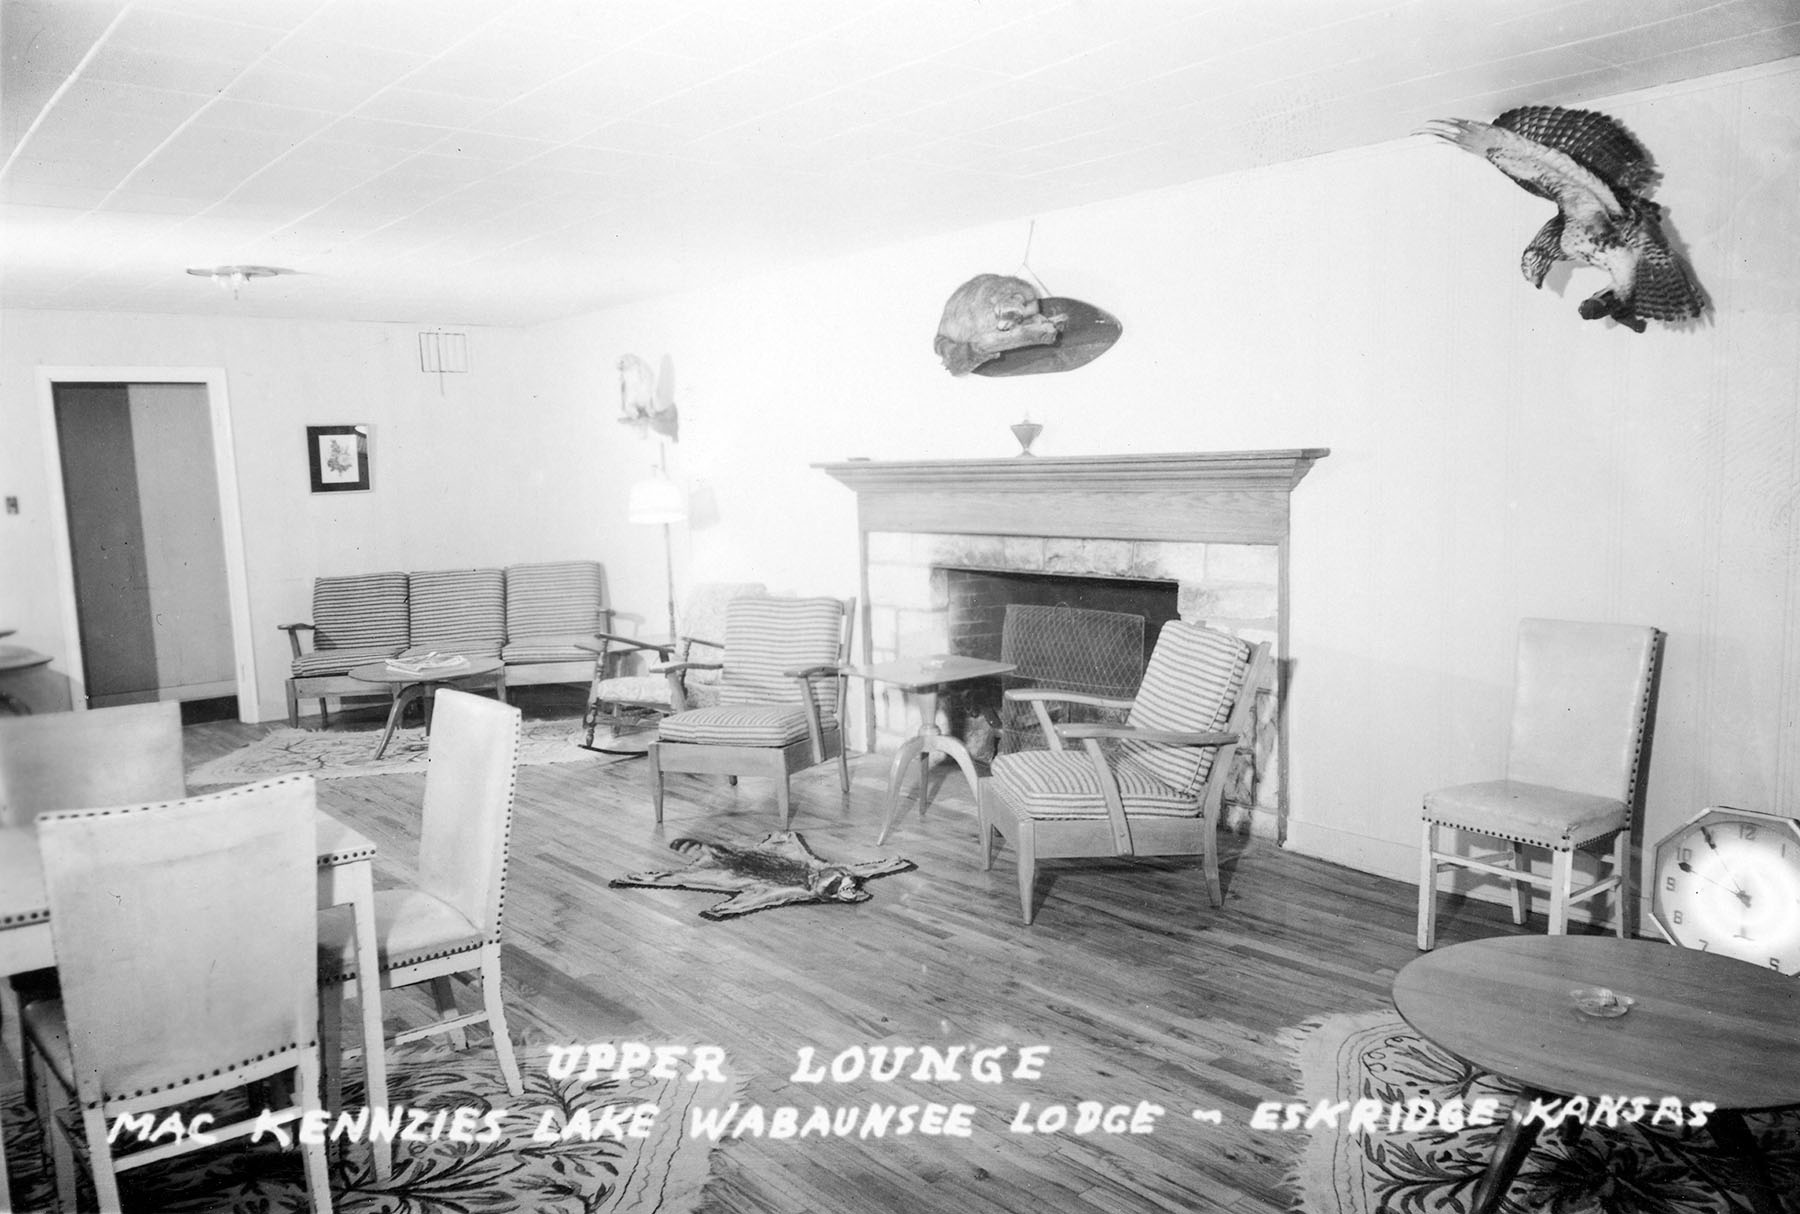 MacKenzie\'s Lake Wabaunsee Lodge, Upper Lounge – Wabaunsee County ...